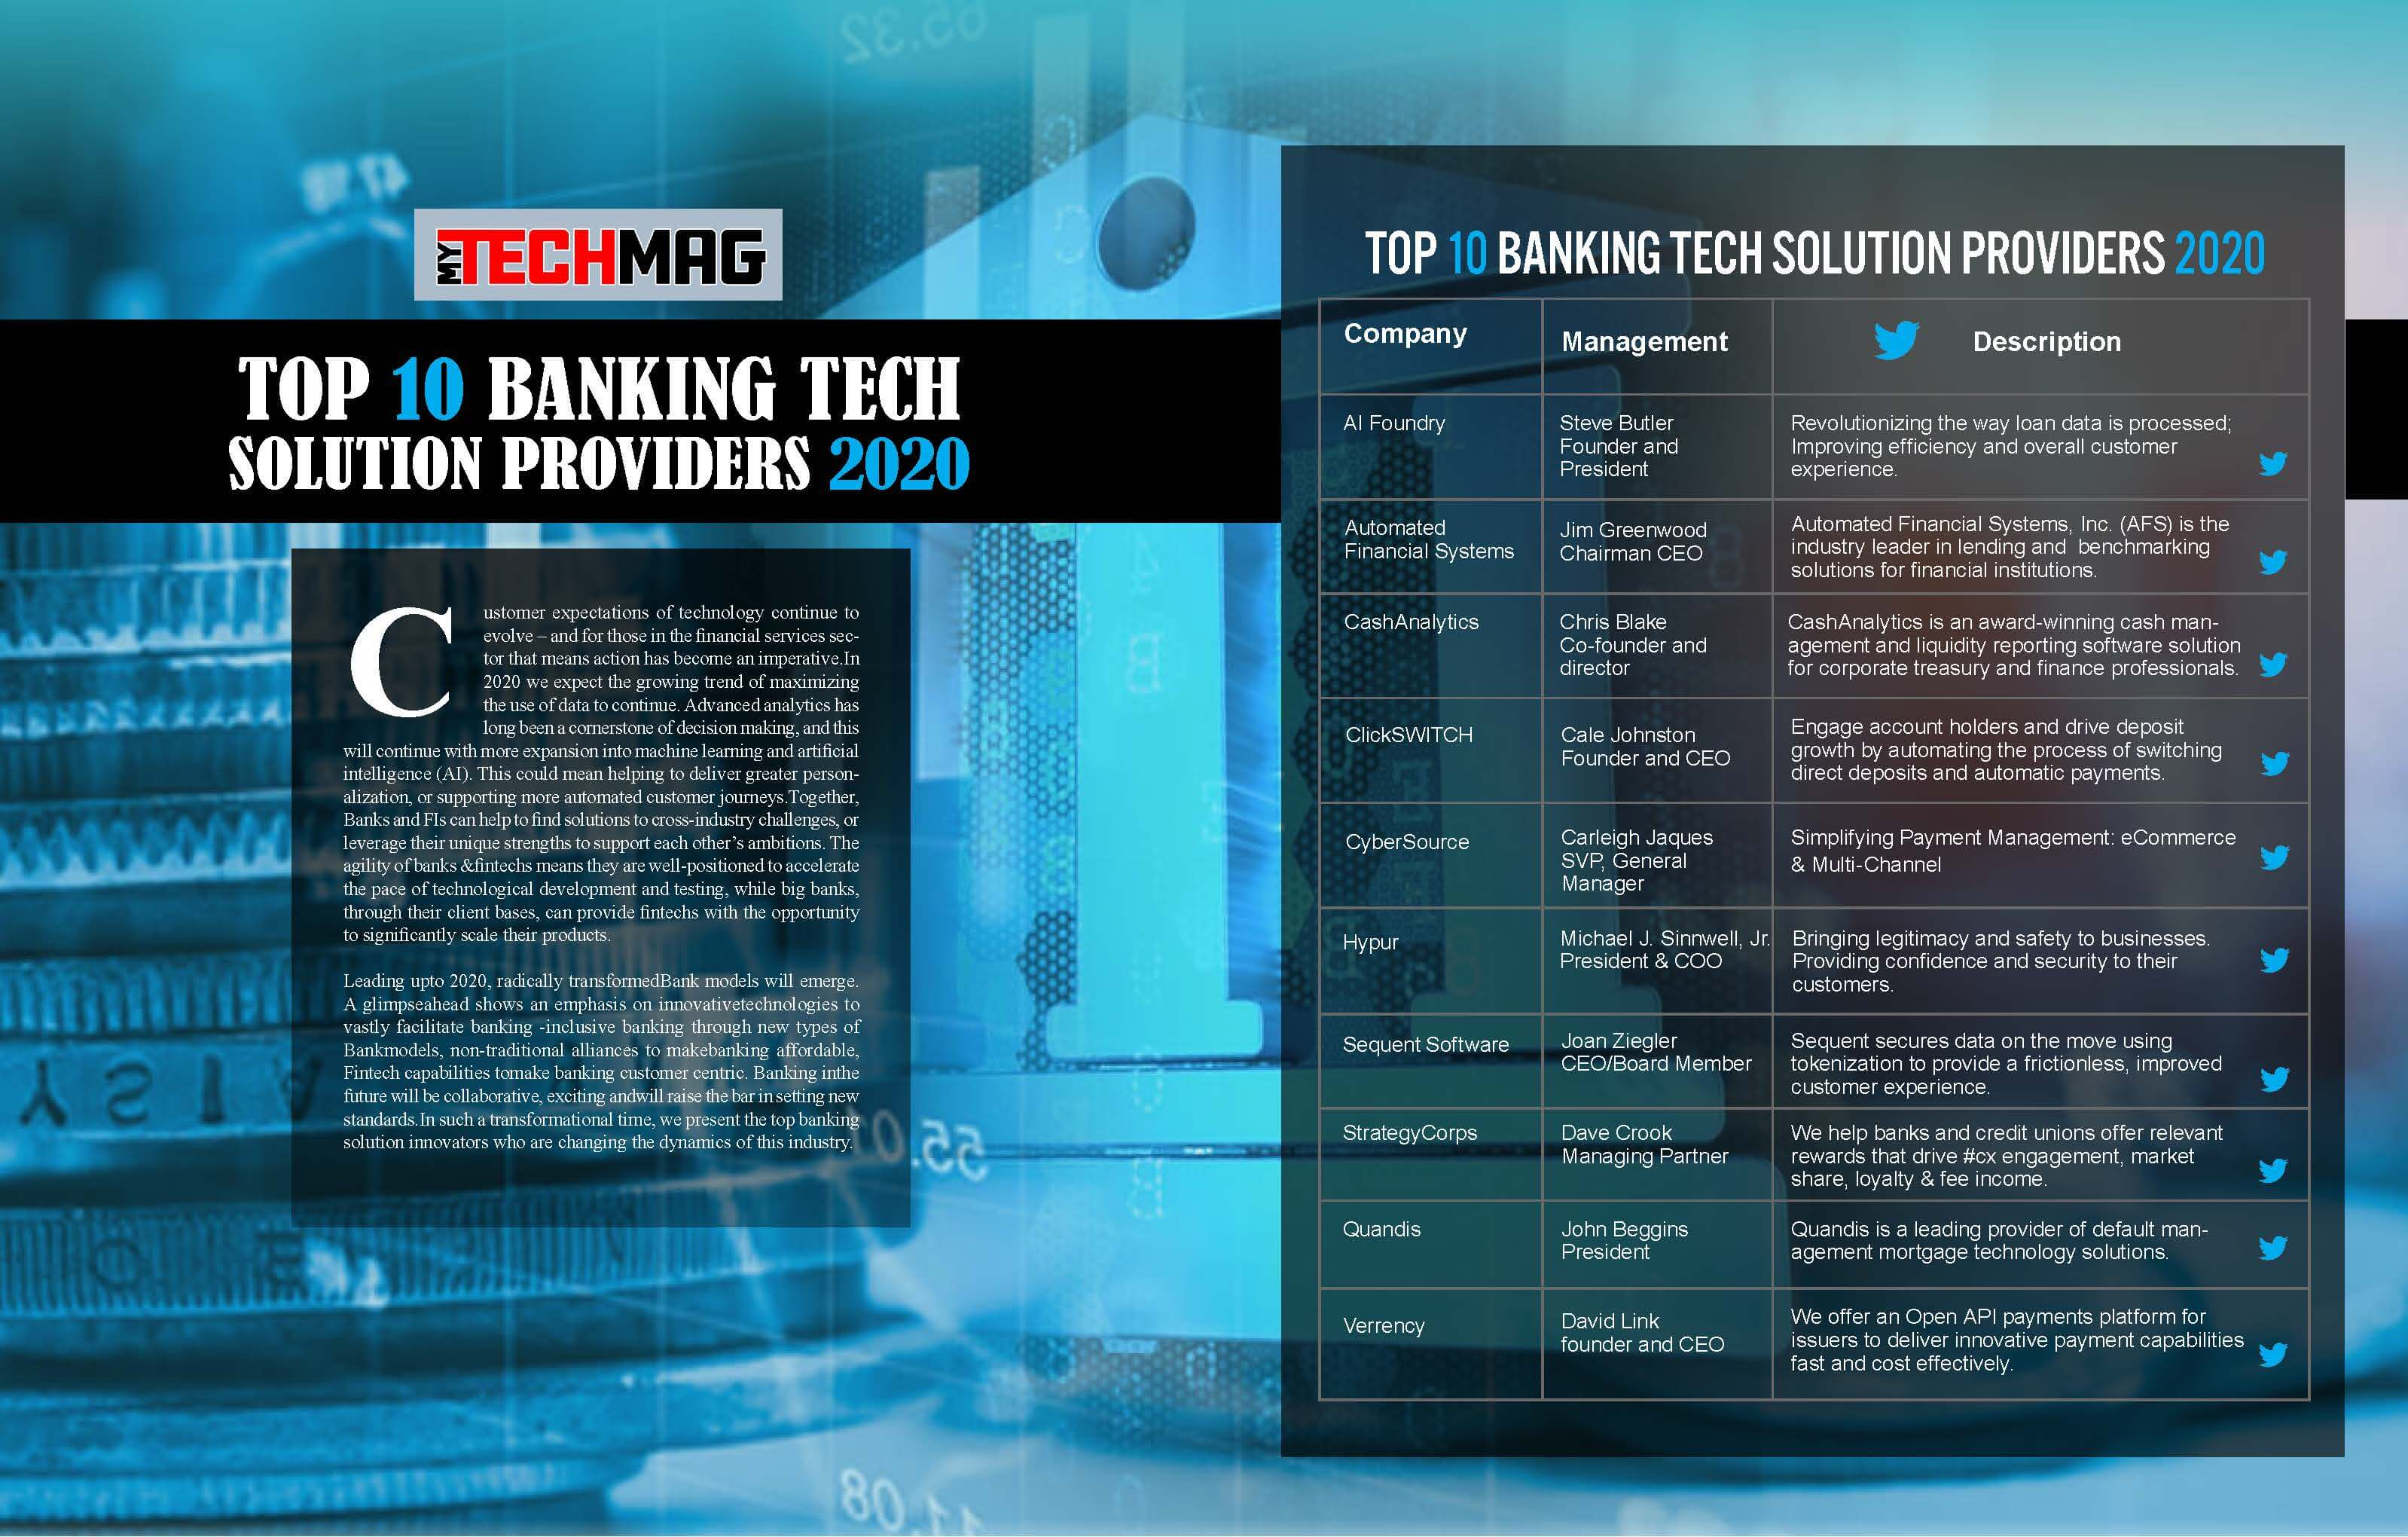 Top 10 Banking Tech Solution Providers 2020